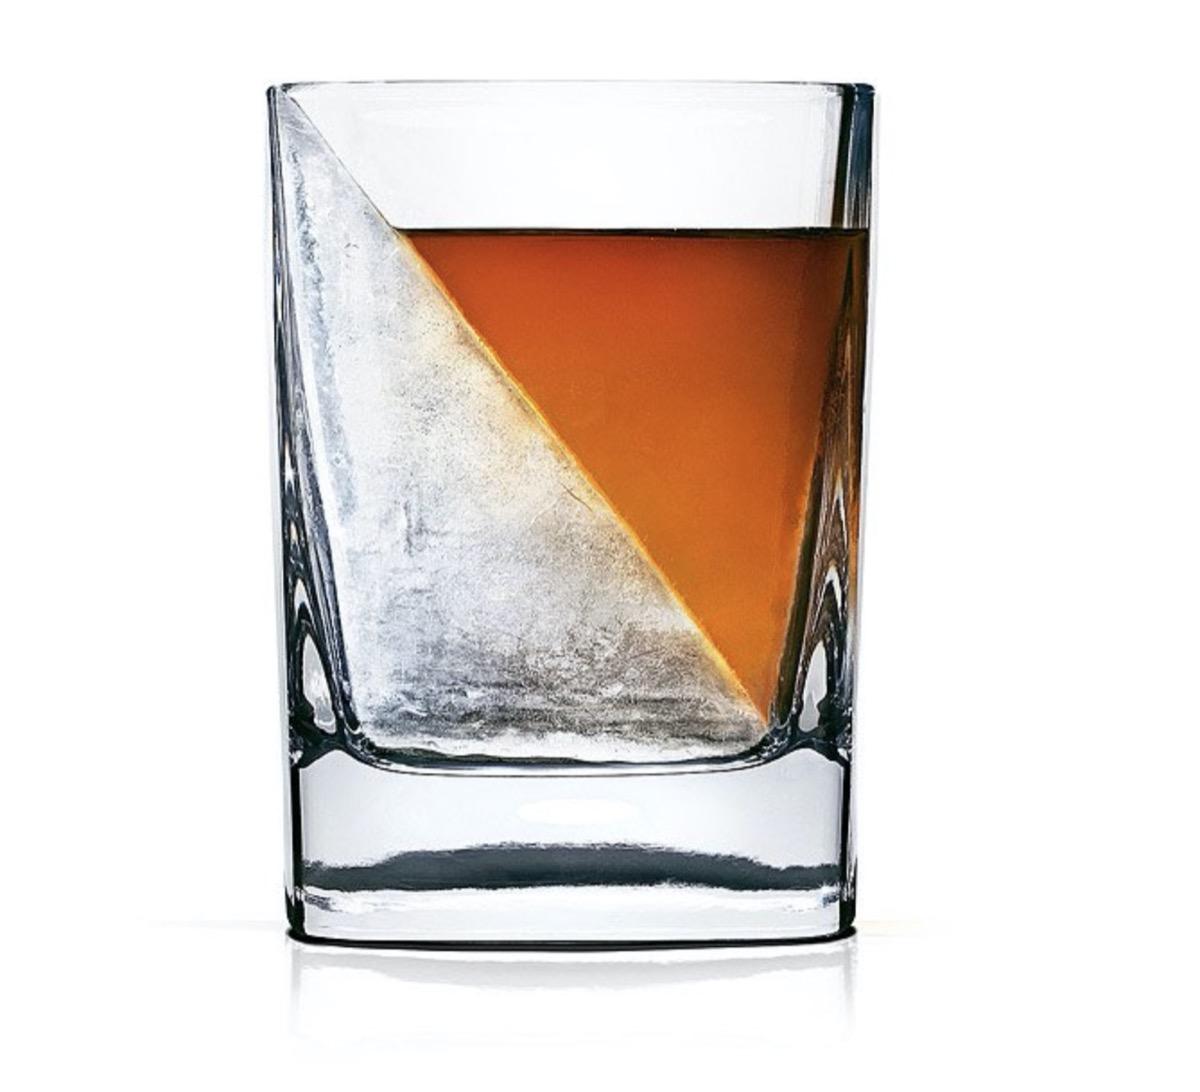 clear glass with an ice wedge and whiskey in it